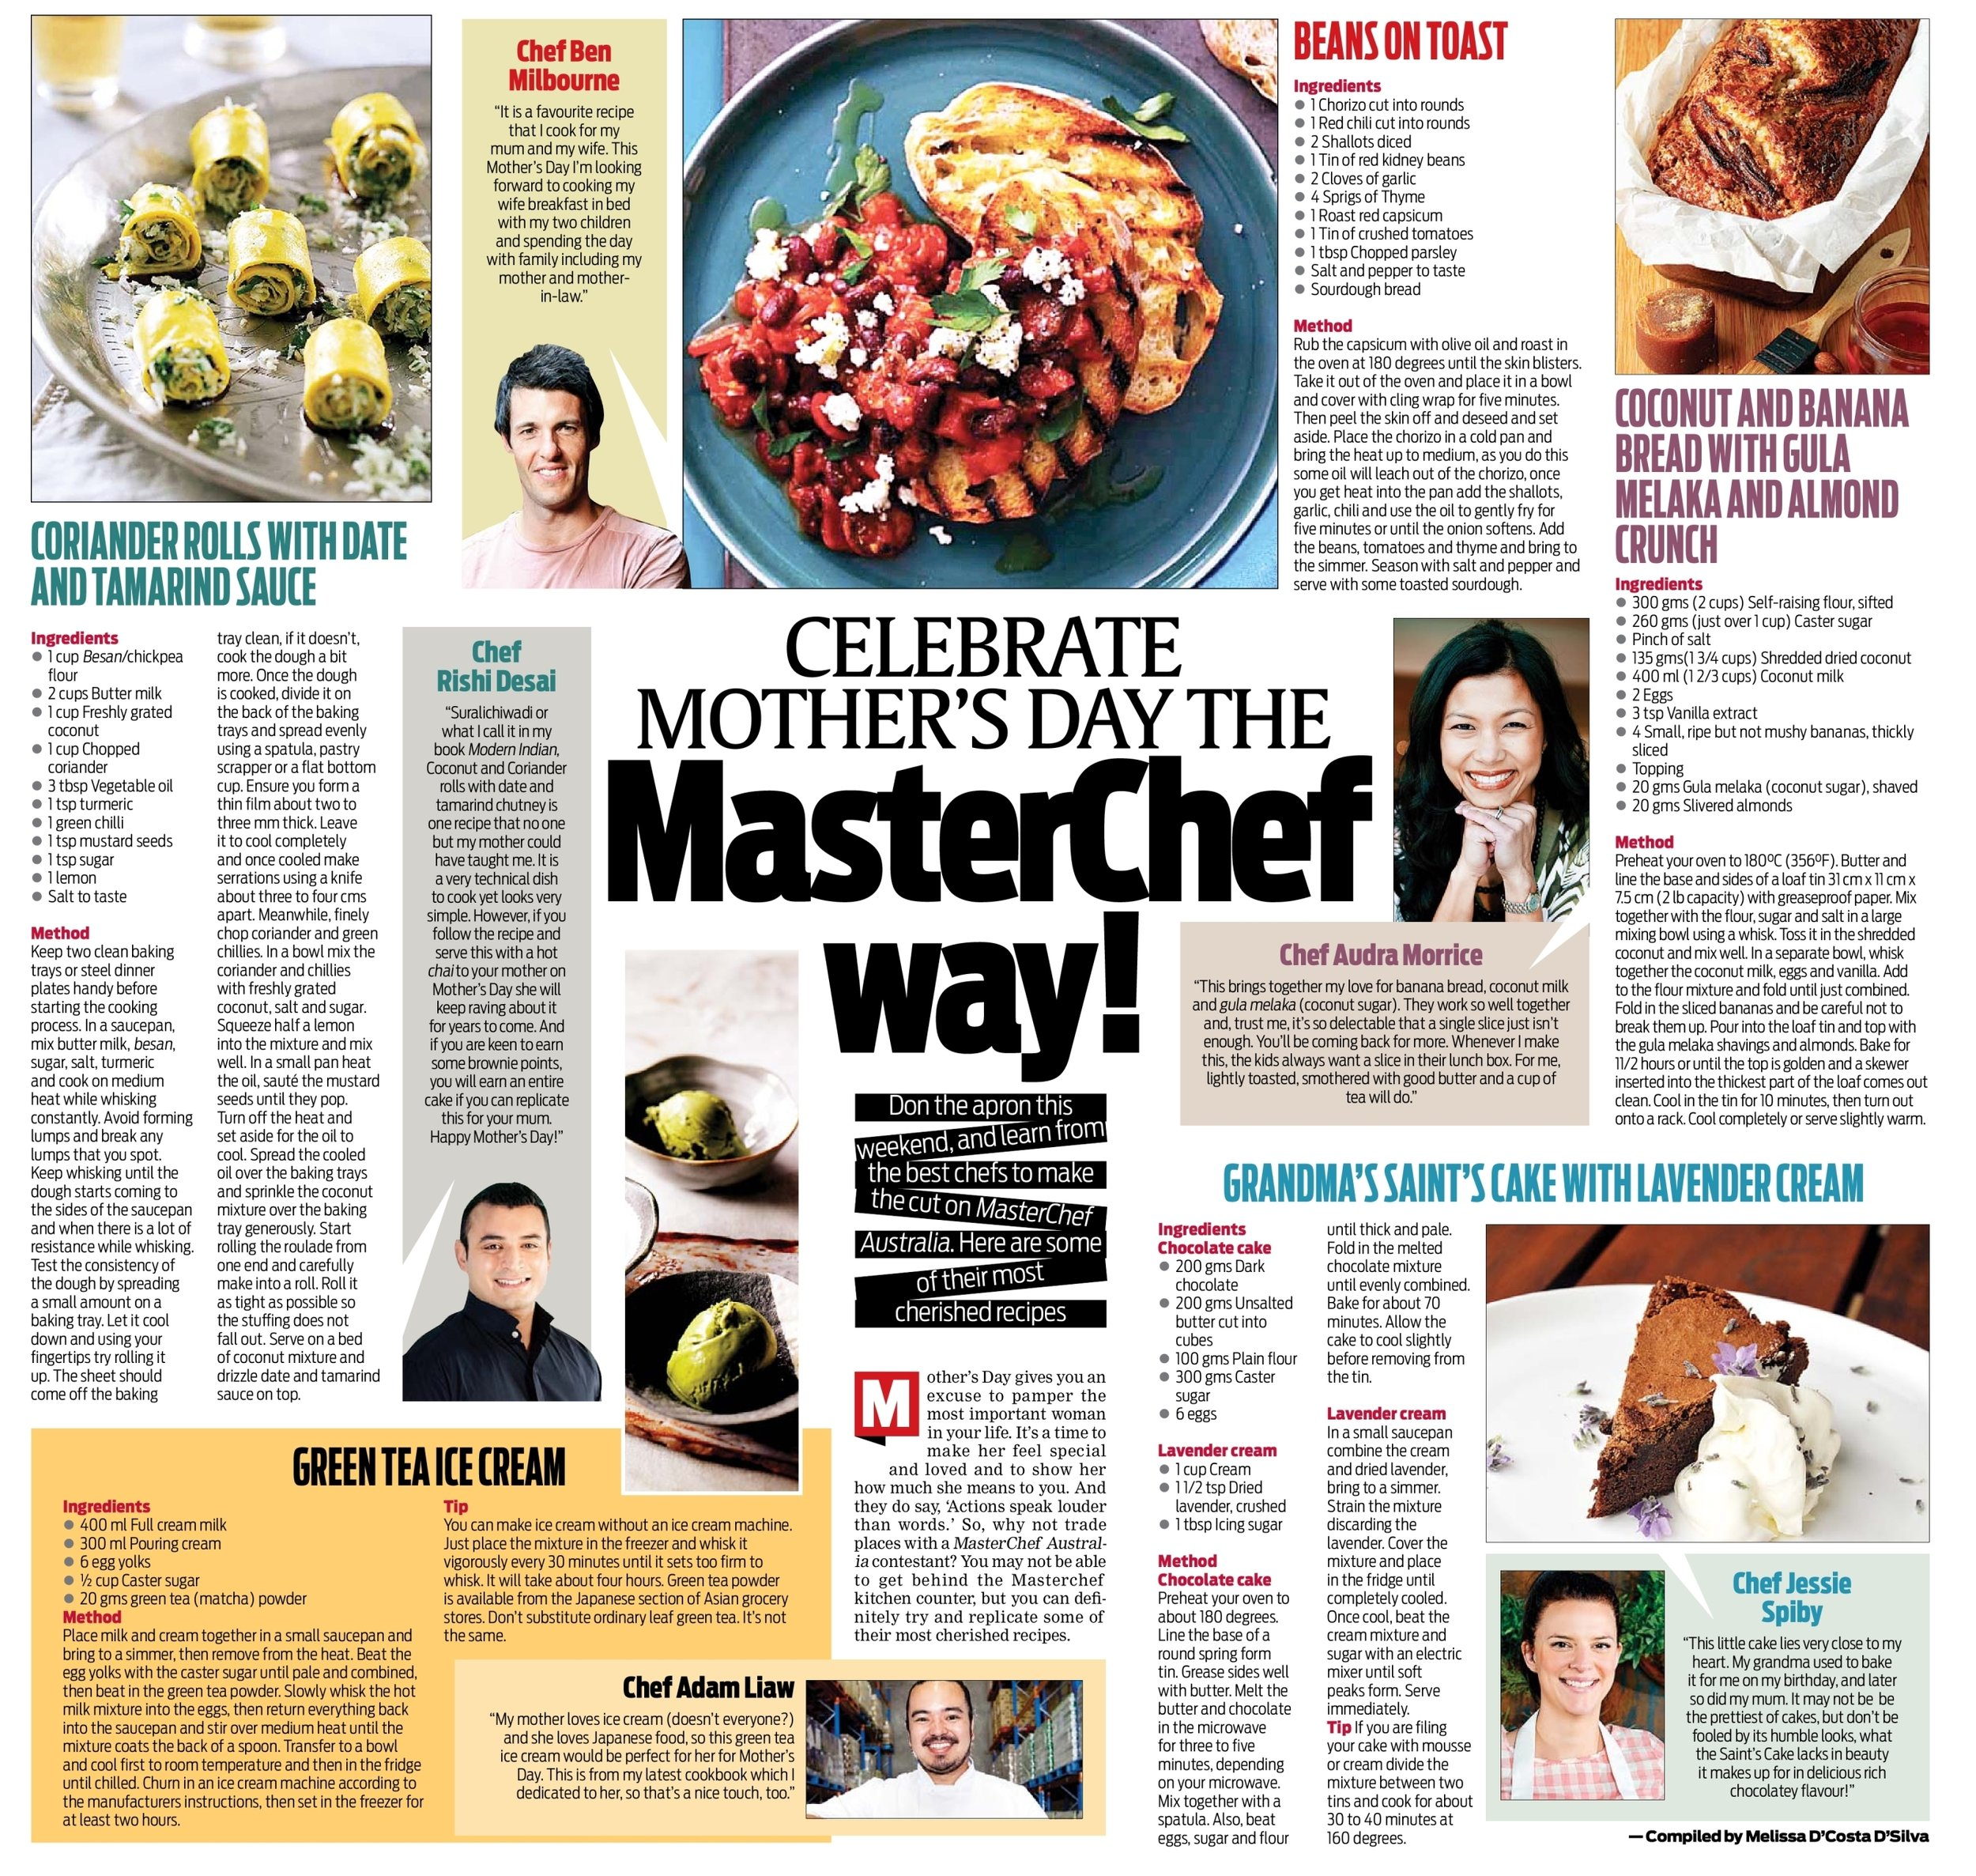 HELLO INDIA - Jessie chats to India's biggest English newspaper about Mother's Day and shares her Grandma's famous chocolate cake recipe.